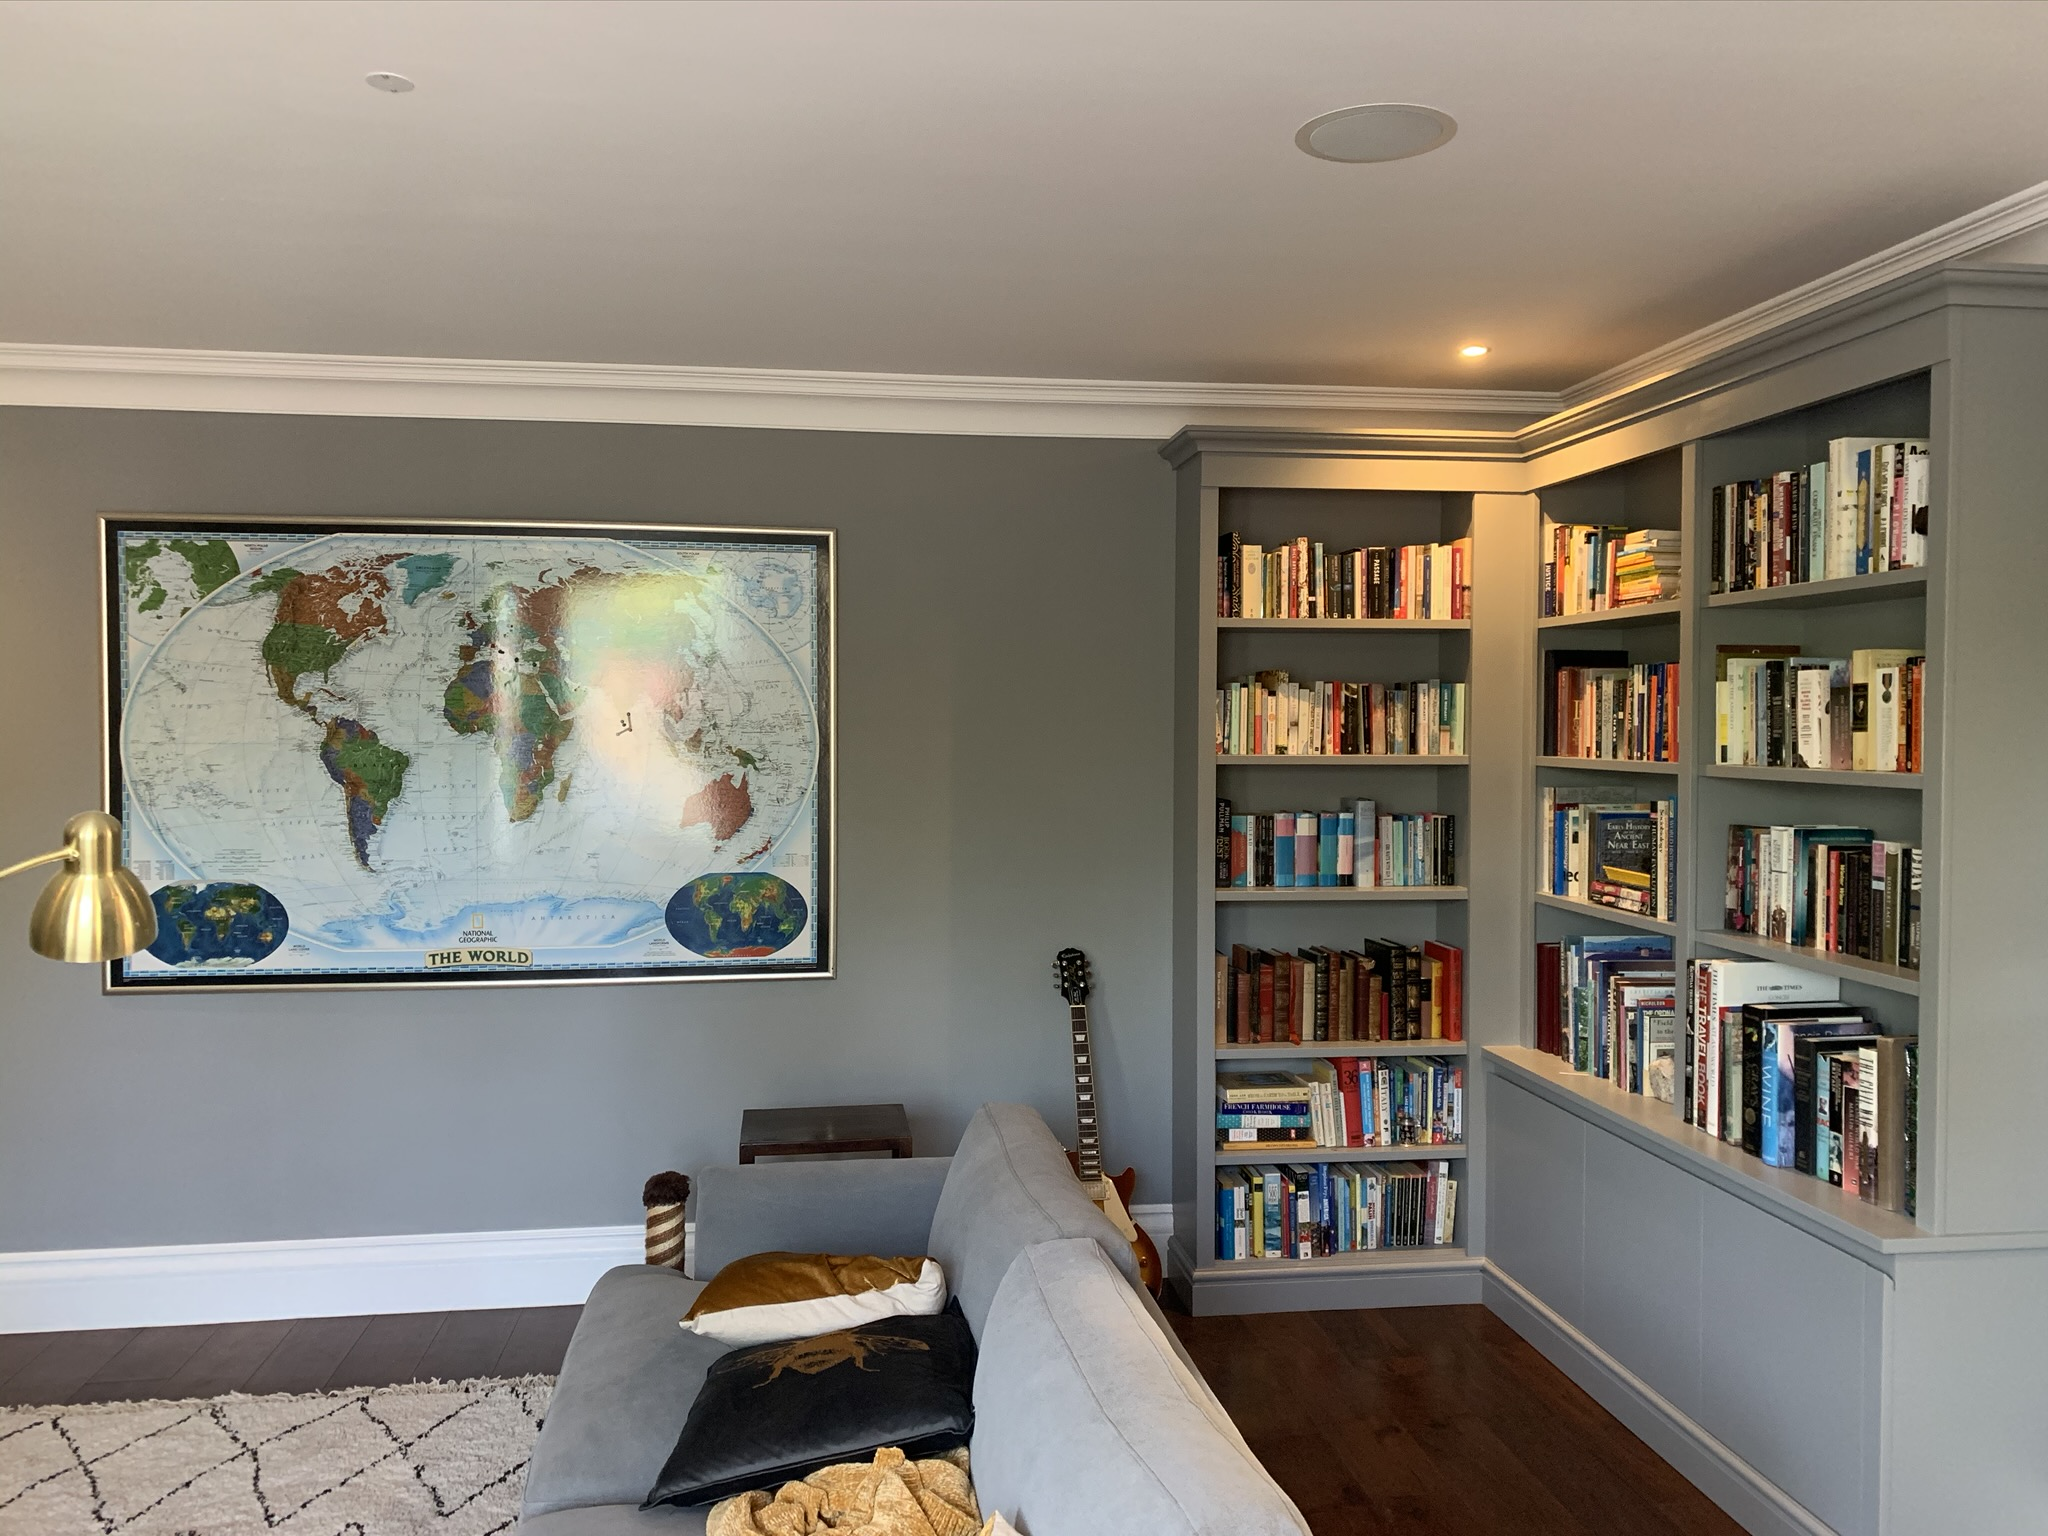 New library room